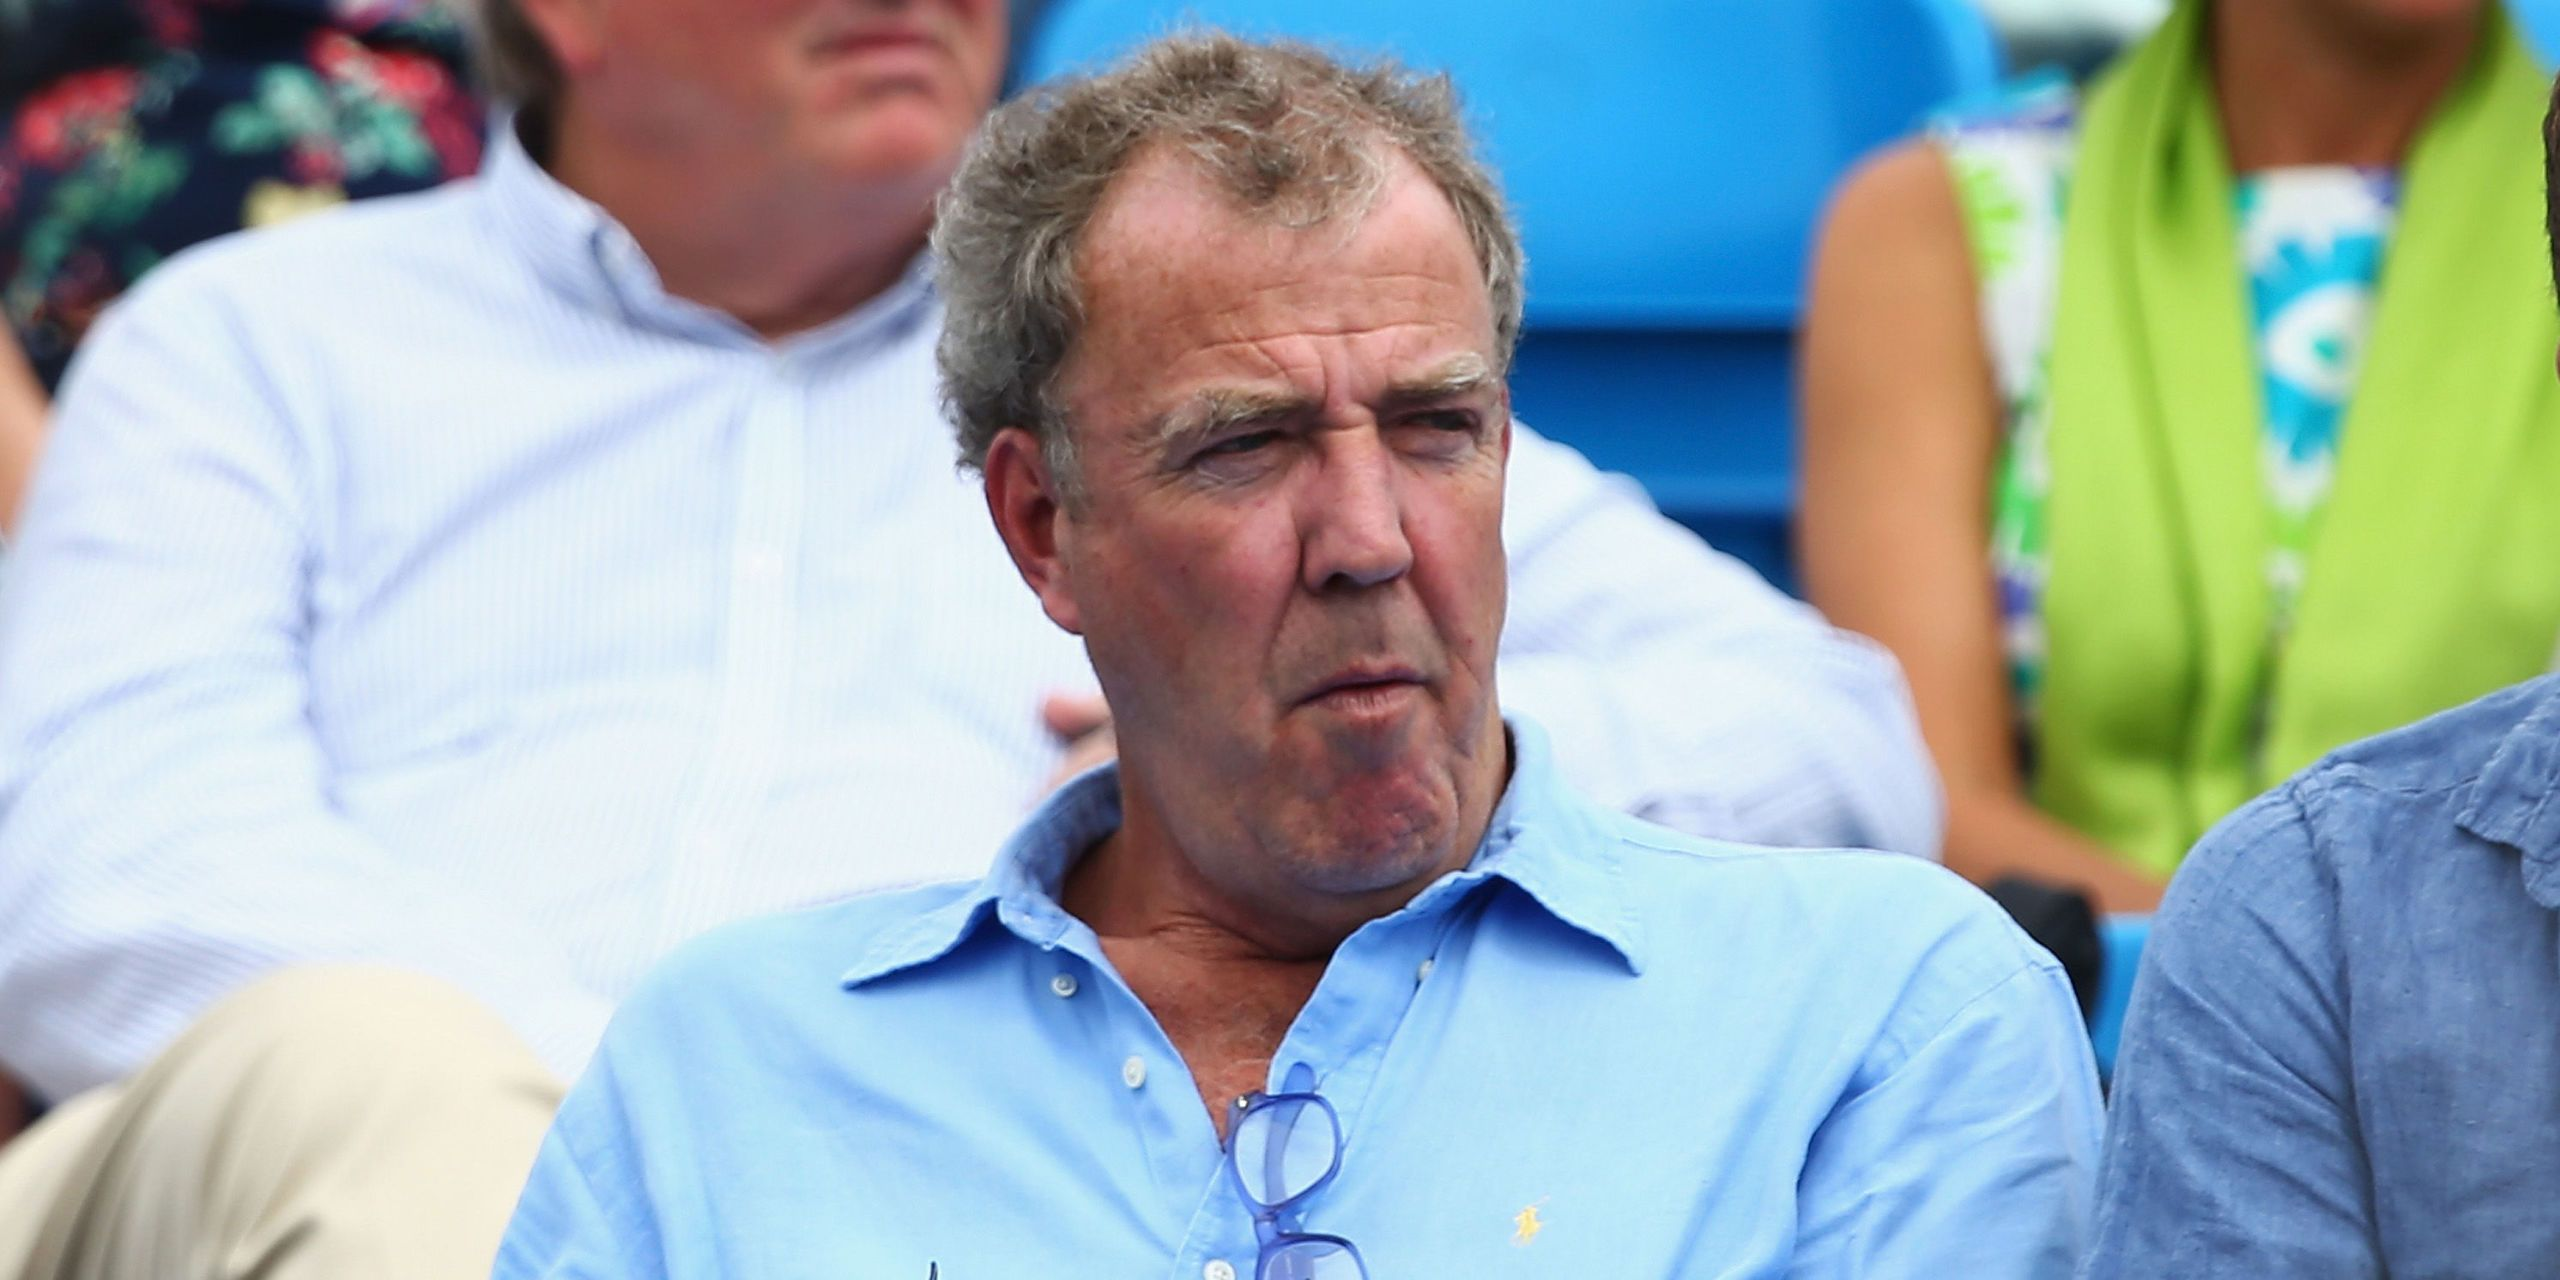 Jeremy Clarkson Could Face Three Years in Argentinian Jail Because of Falklands Scandal